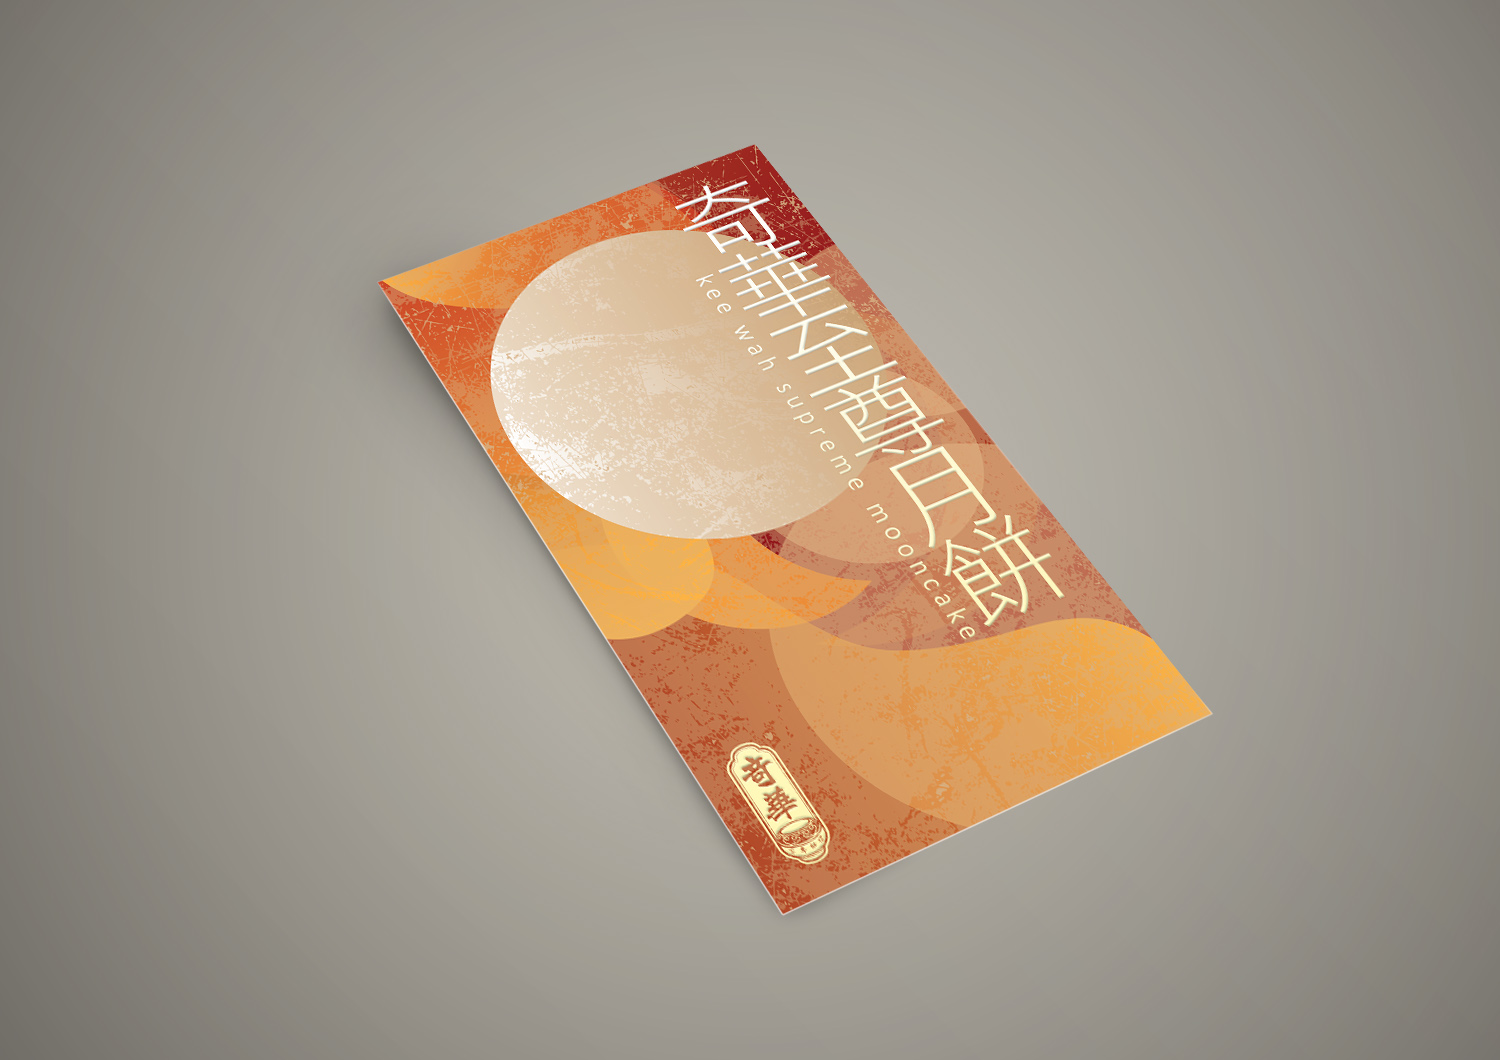 Mooncake Gift Card Design for Kee Wah Bakery